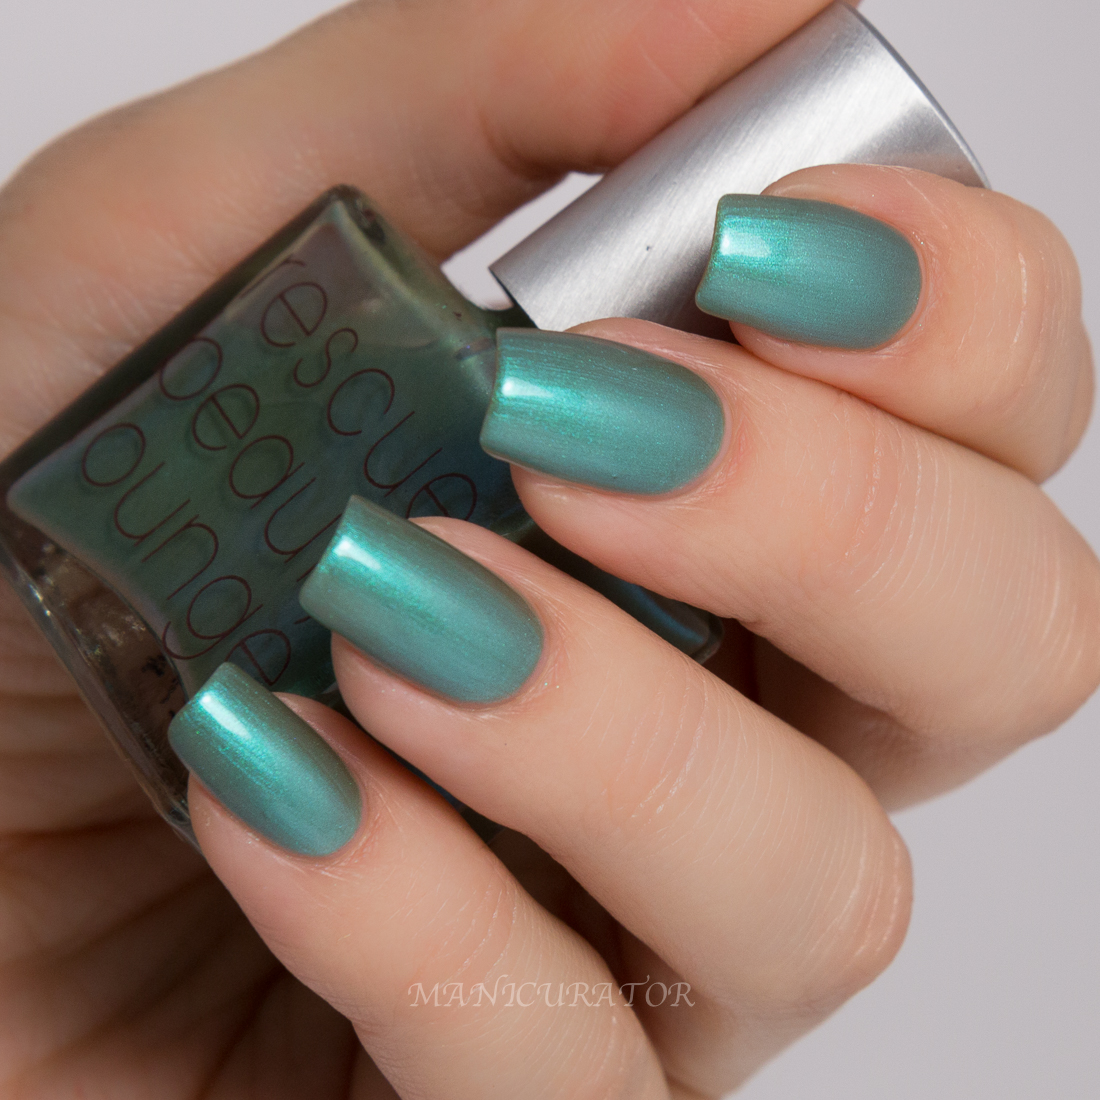 R29-Rescue-Beauty-Lounge-Galaxy-Glue